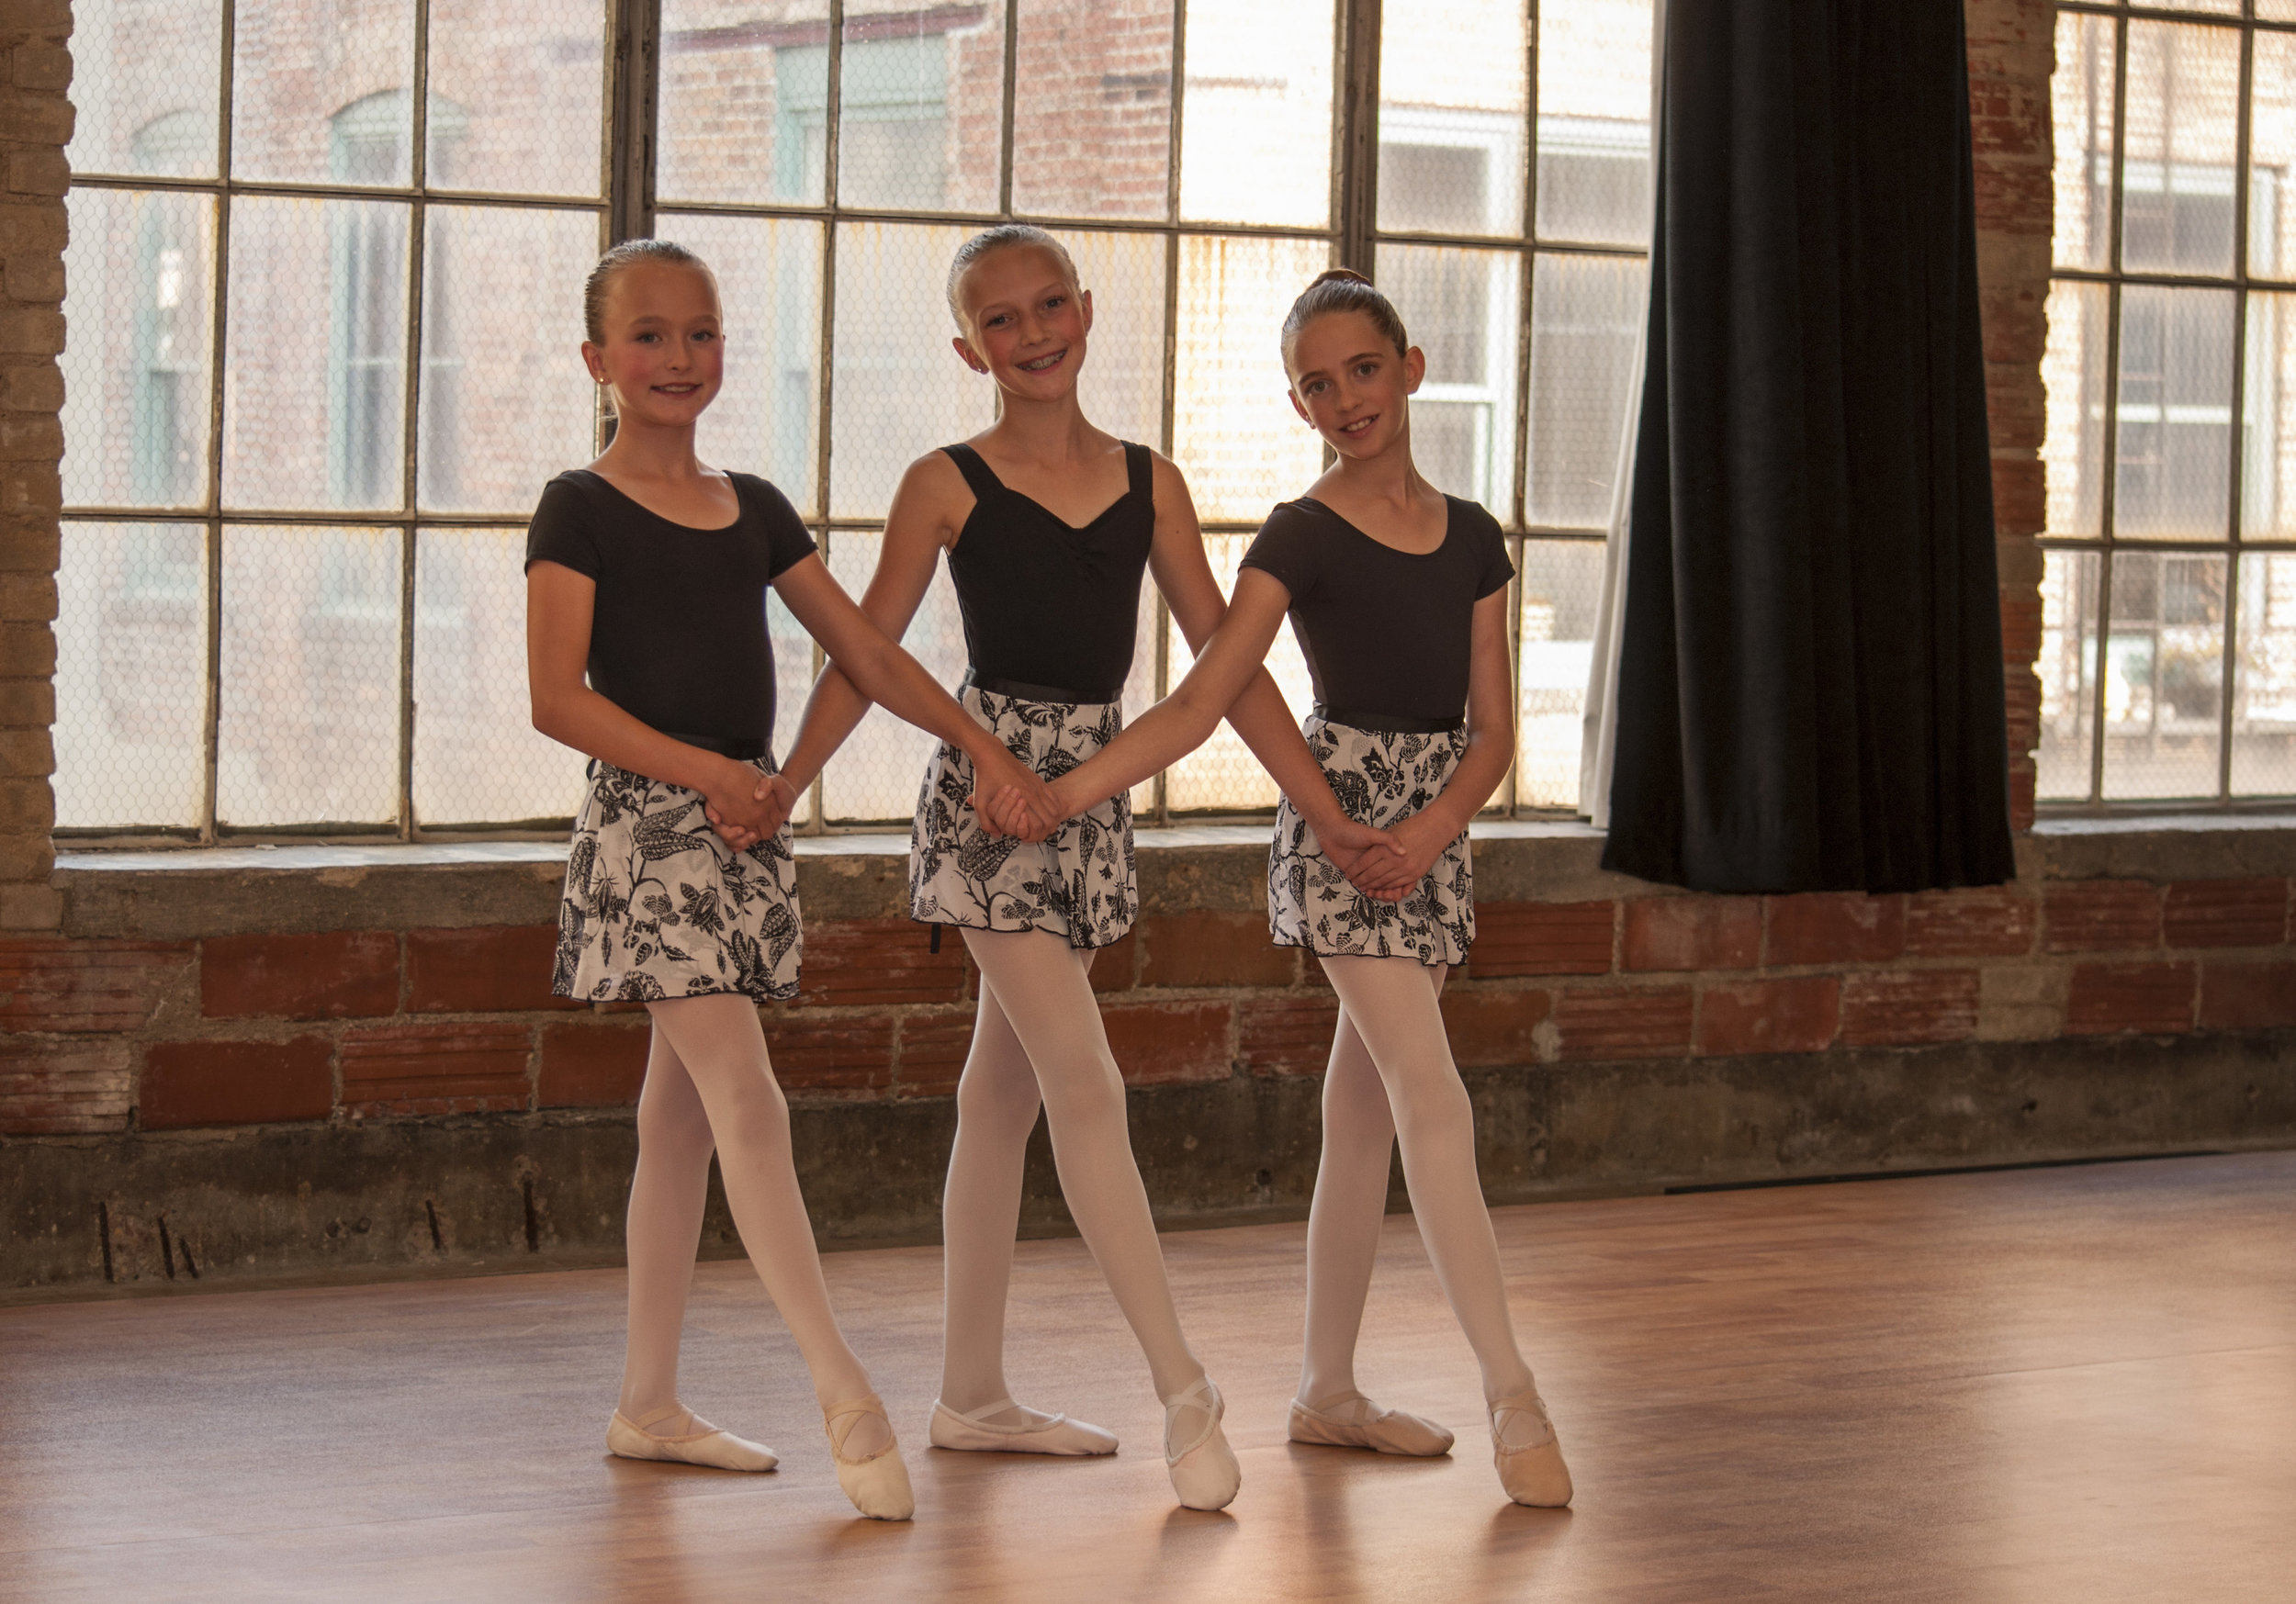 private lesson - trio - $70 - per hour$23.33 - per student, per hour$250 - per monthLessons are set up with the private lesson instructor, student, and the availability of studio space.